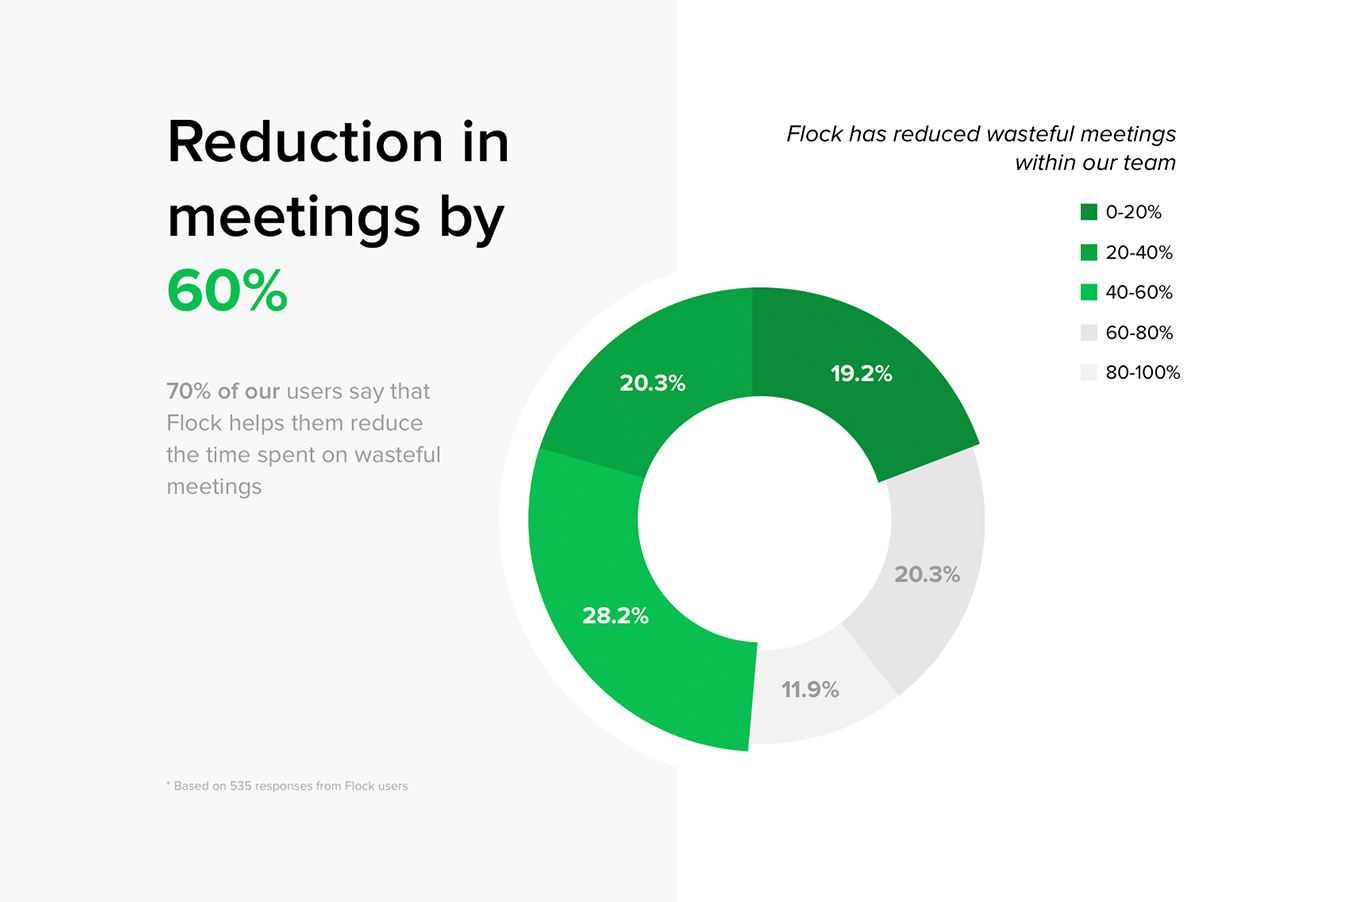 Survey results: 70% of our users say that Flock helps them reduce the time spent on wasteful meetings